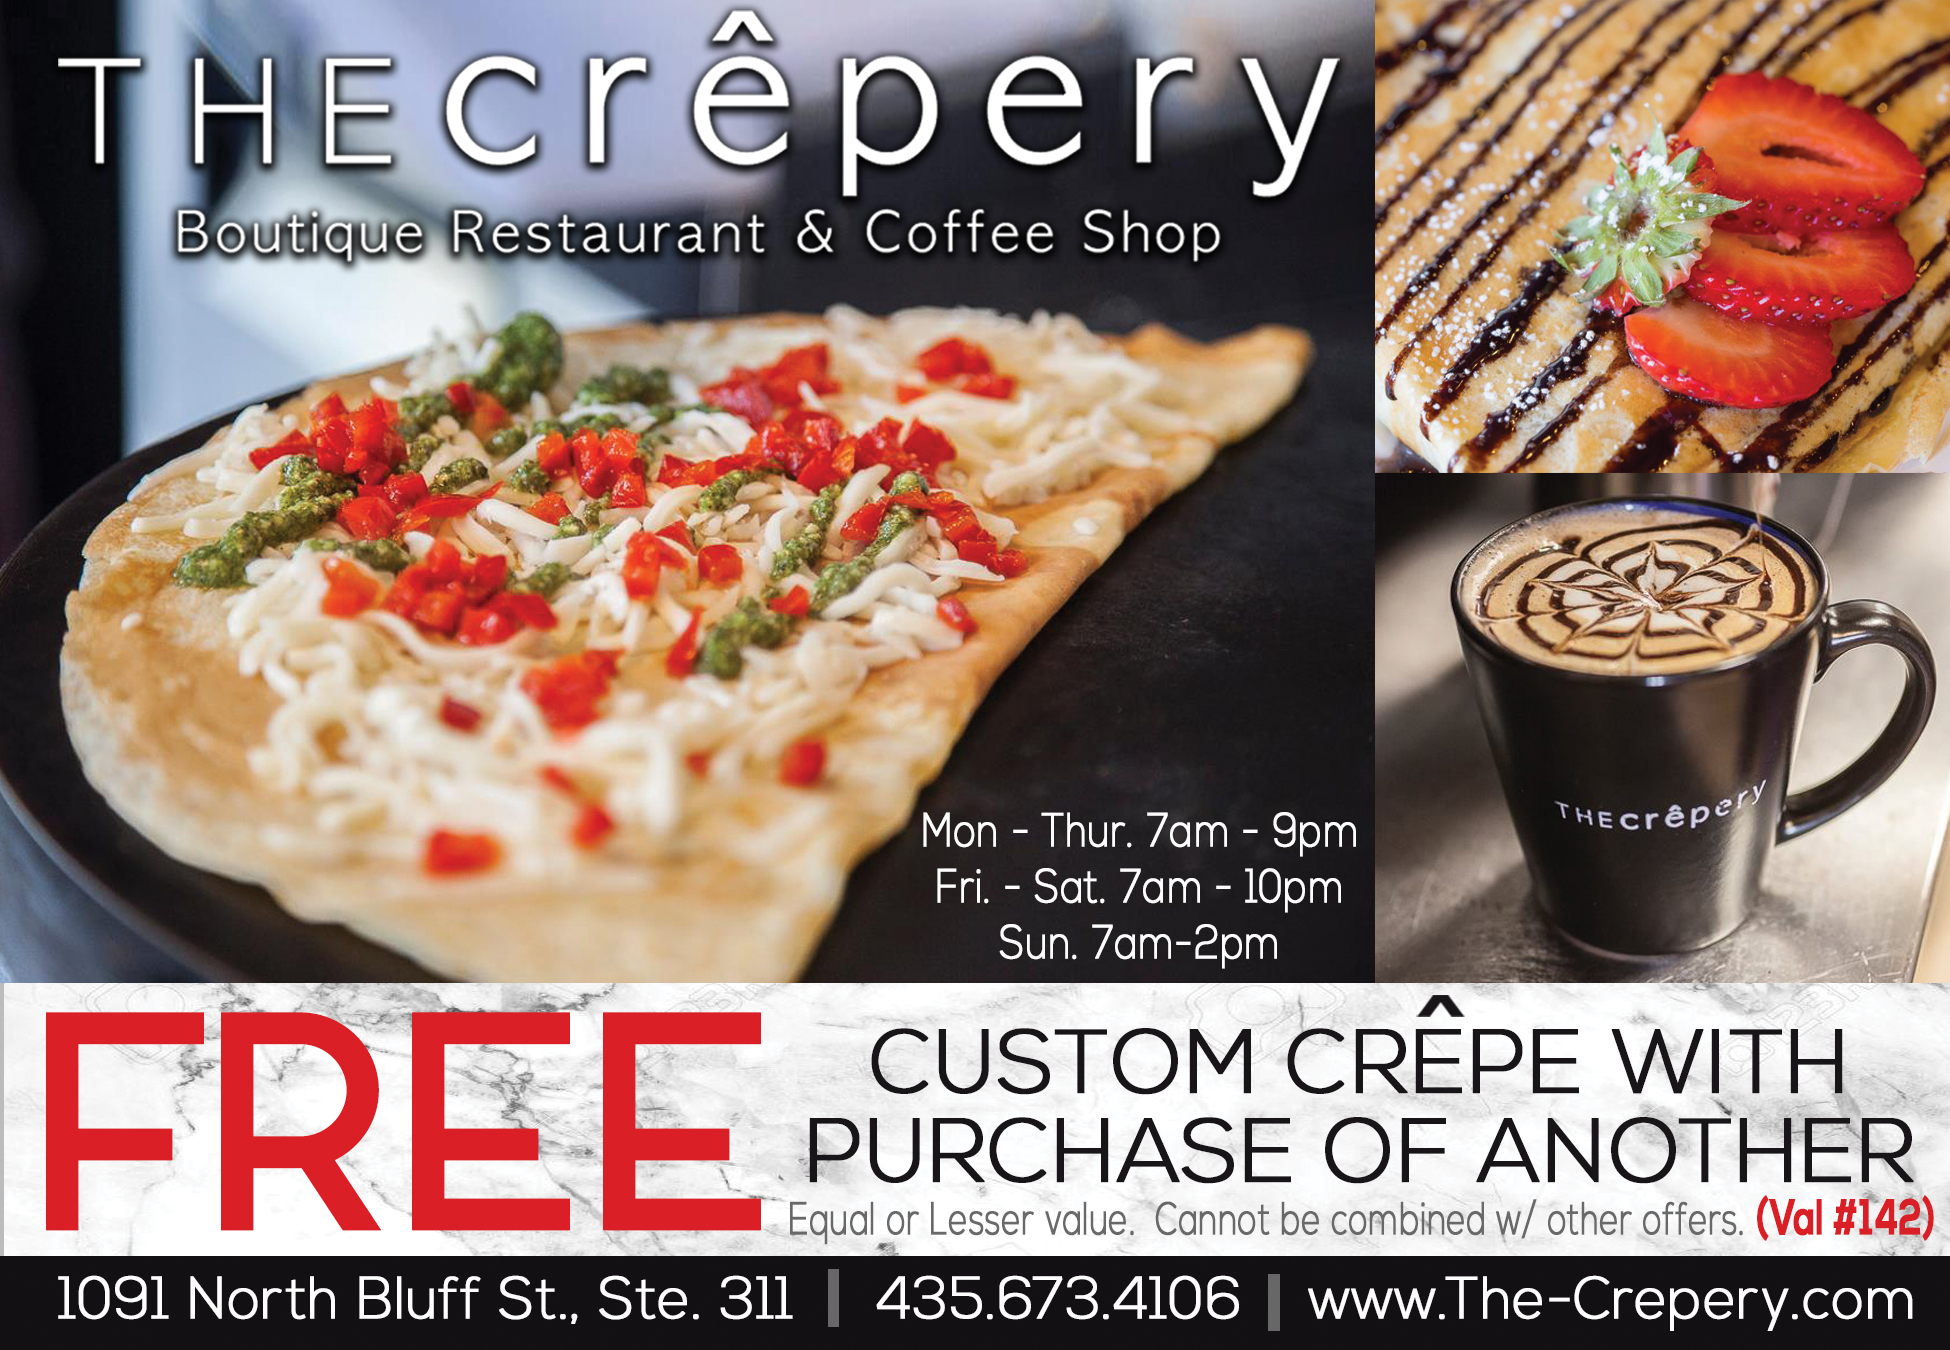 The Crepery Boutique Restaurant and Coffee Shop